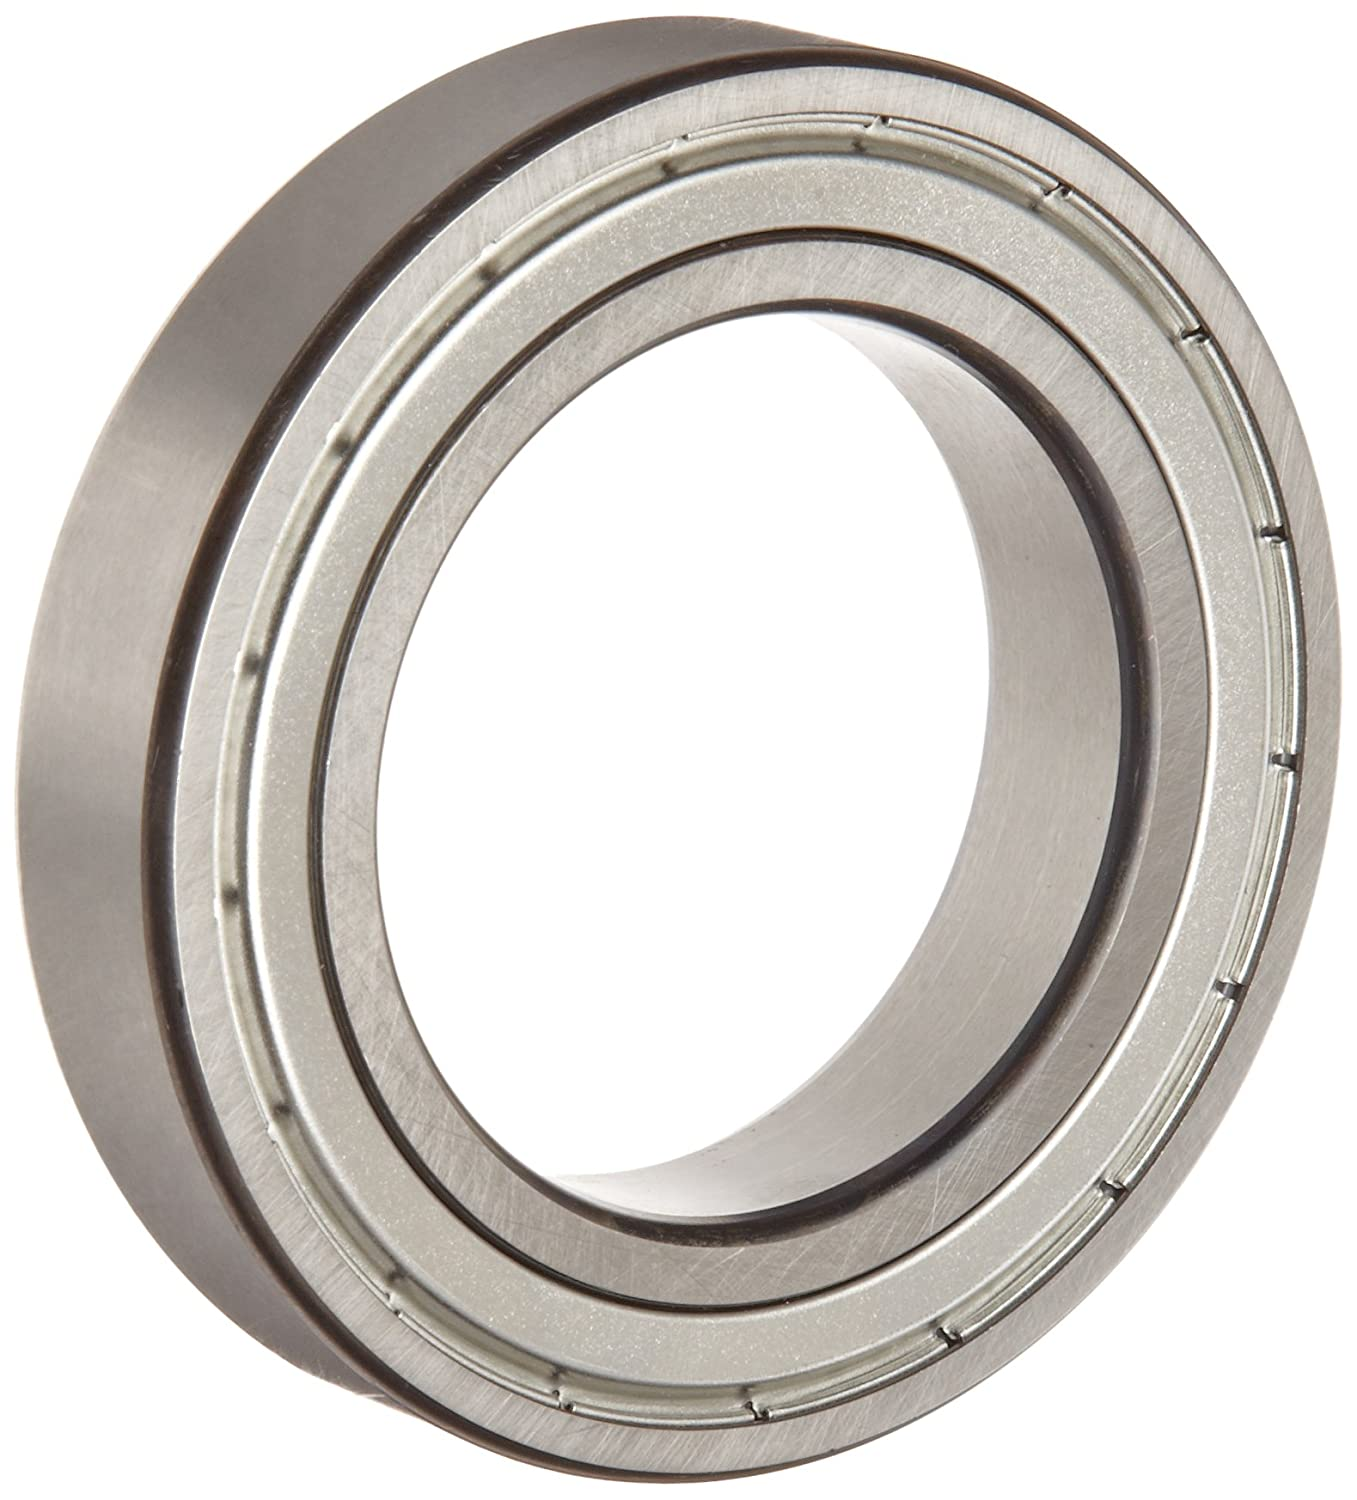 FAG Bearings 6002.2RSR.C3 Single Row Deep Groove Ball Bearing Rubber Seal, 15x32x9mm